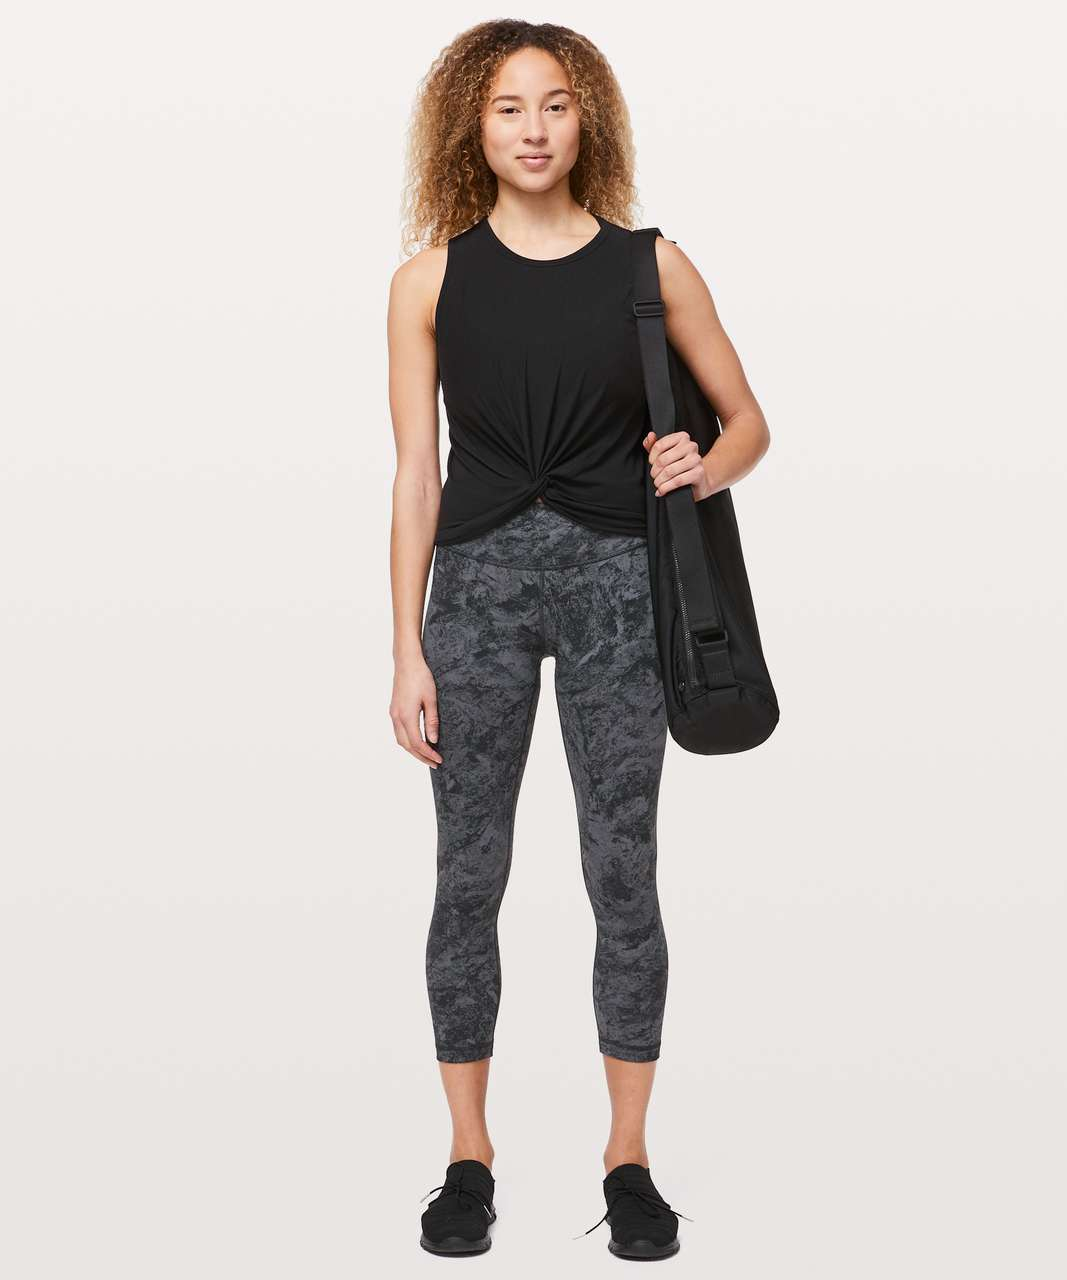 "Lululemon Wunder Under Crop *Mid-Rise Full-On Luxtreme 21"" - Washed Marble Titanium Deep Coal"